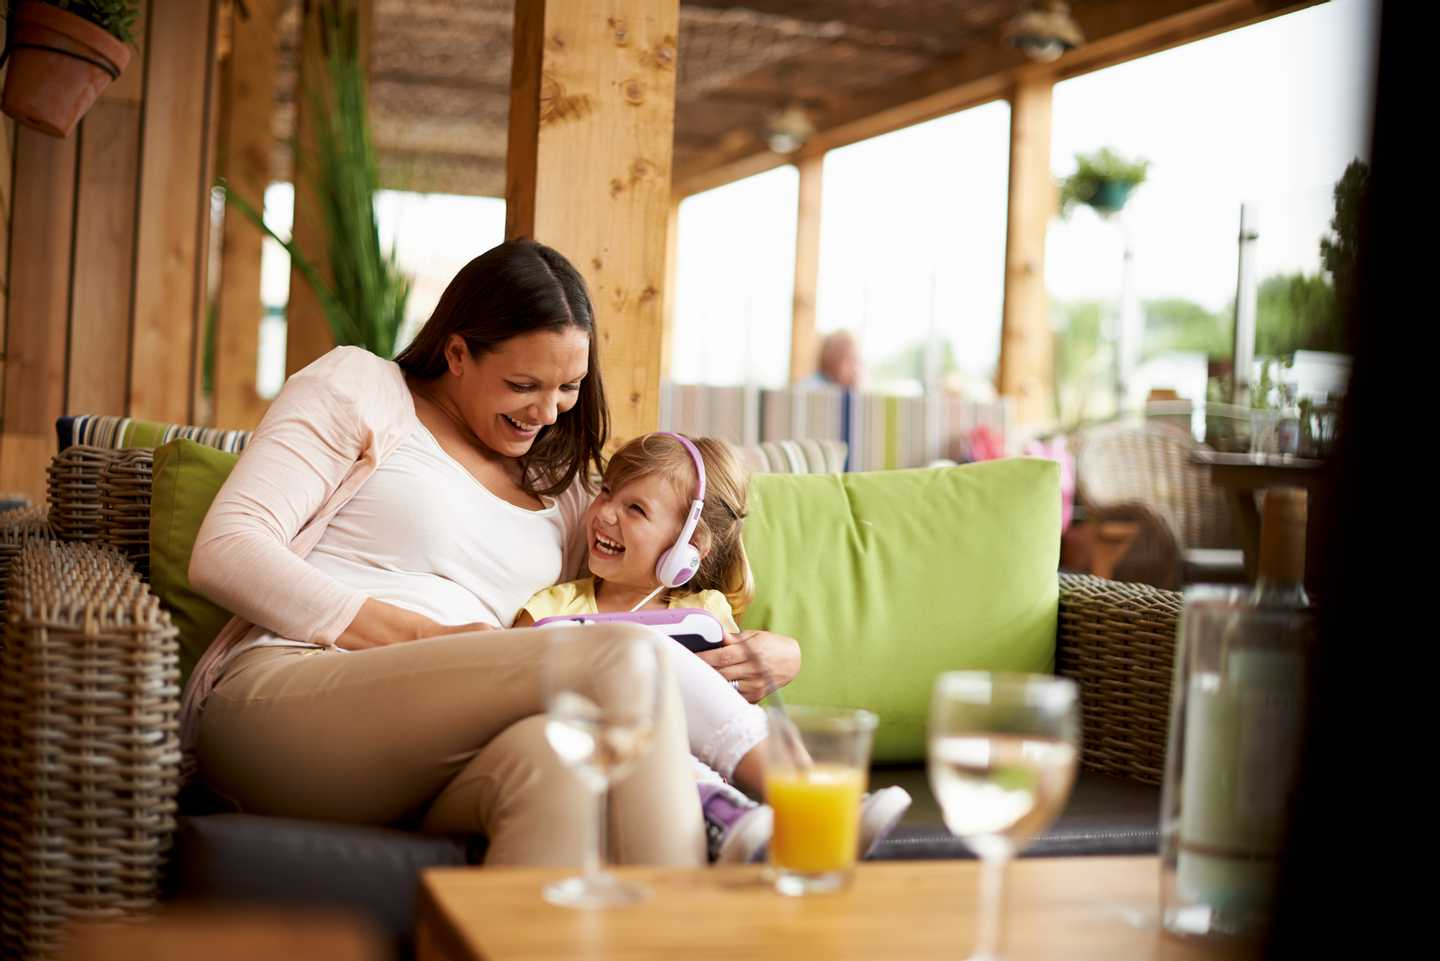 A mum and daughter relaxing with a drink in The Boathouse bar and restaurant whilst playing with one of the daughters toys